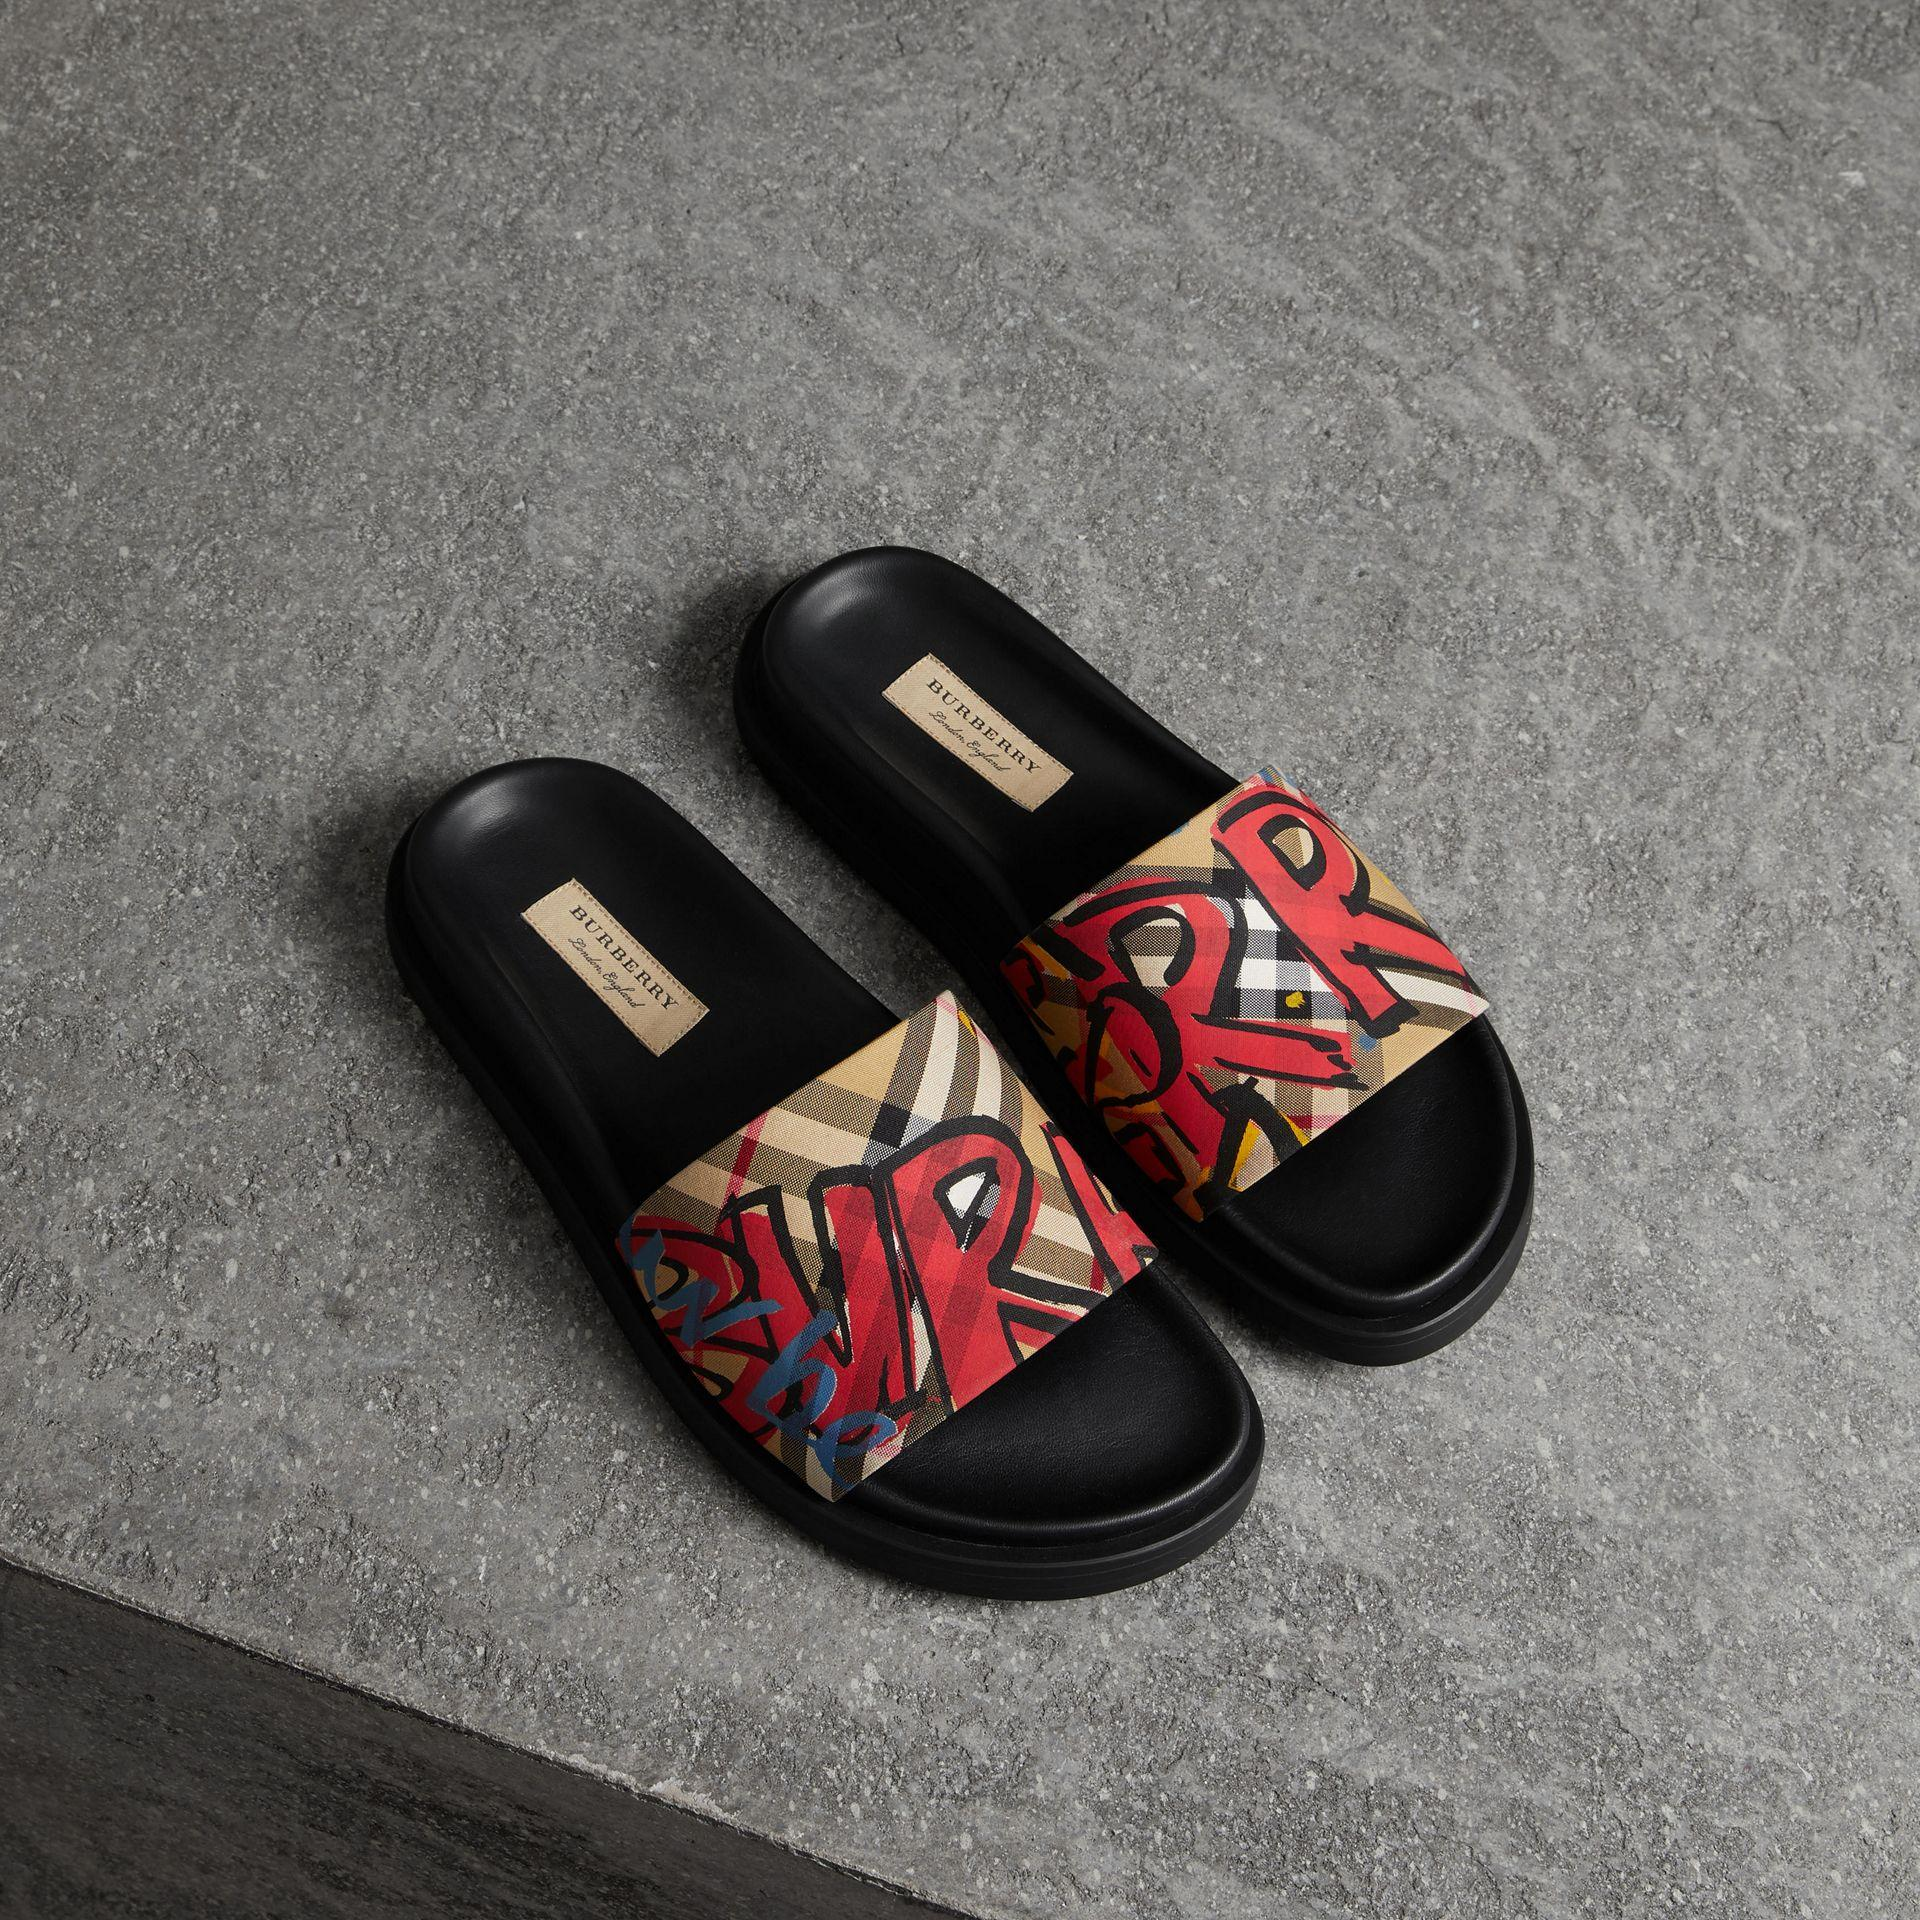 da0b3133fbe0 BURBERRY. Graffiti Print Vintage Check And Leather Slides in Antique Yellow